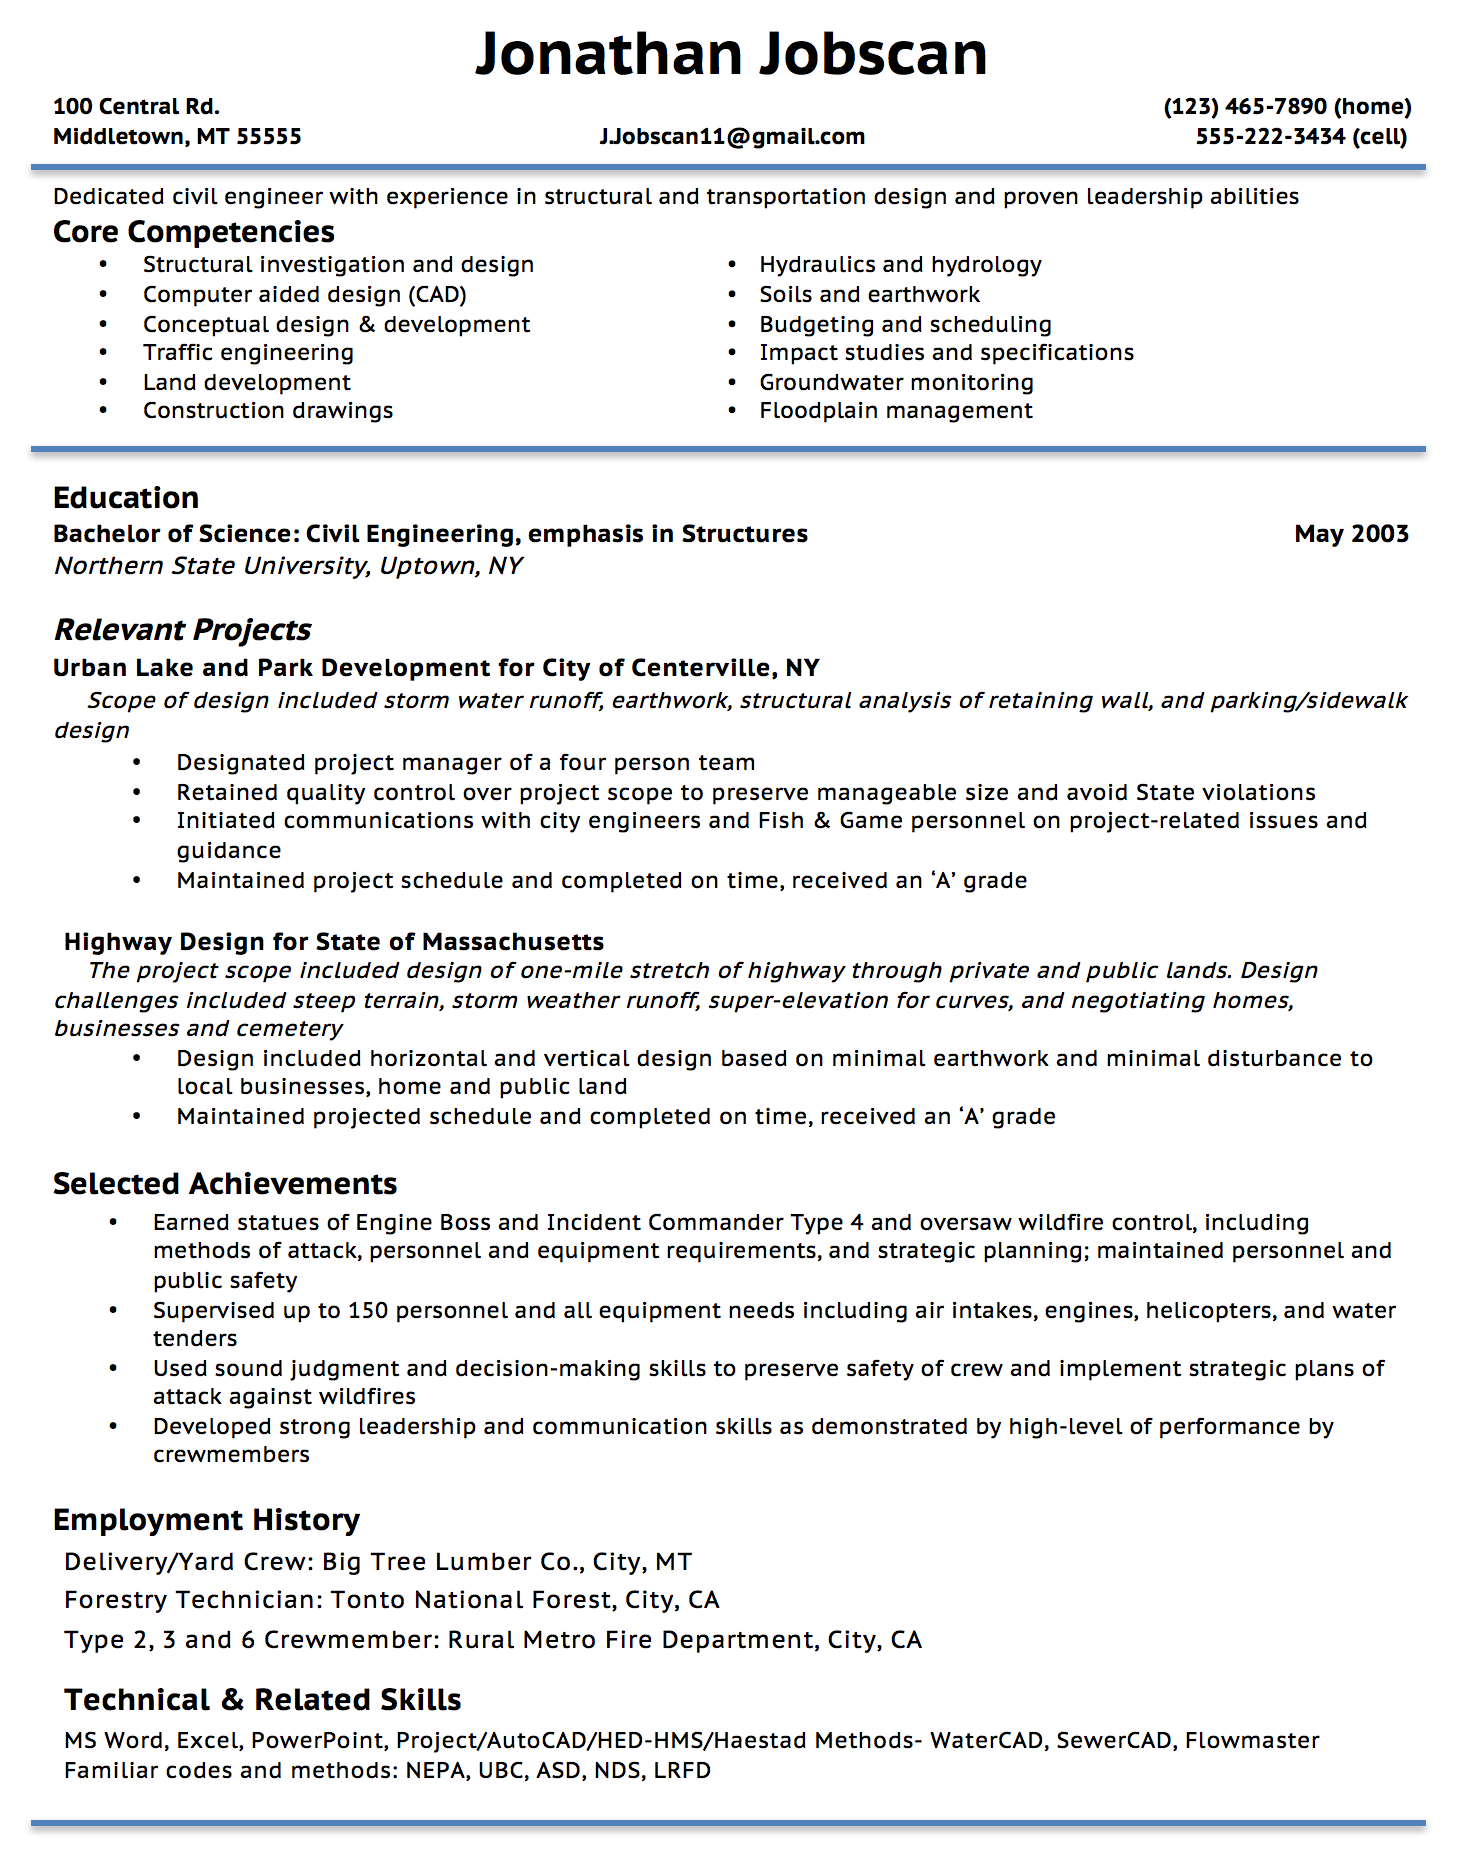 Opposenewapstandardsus  Pleasant Resume Writing Guide  Jobscan With Entrancing Example Of A Functional Resume Format With Endearing Product Management Resume Also Resume Recommendations In Addition How To Send Resume Via Email And Makeup Resume As Well As What To Have On A Resume Additionally Sample Simple Resume From Jobscanco With Opposenewapstandardsus  Entrancing Resume Writing Guide  Jobscan With Endearing Example Of A Functional Resume Format And Pleasant Product Management Resume Also Resume Recommendations In Addition How To Send Resume Via Email From Jobscanco